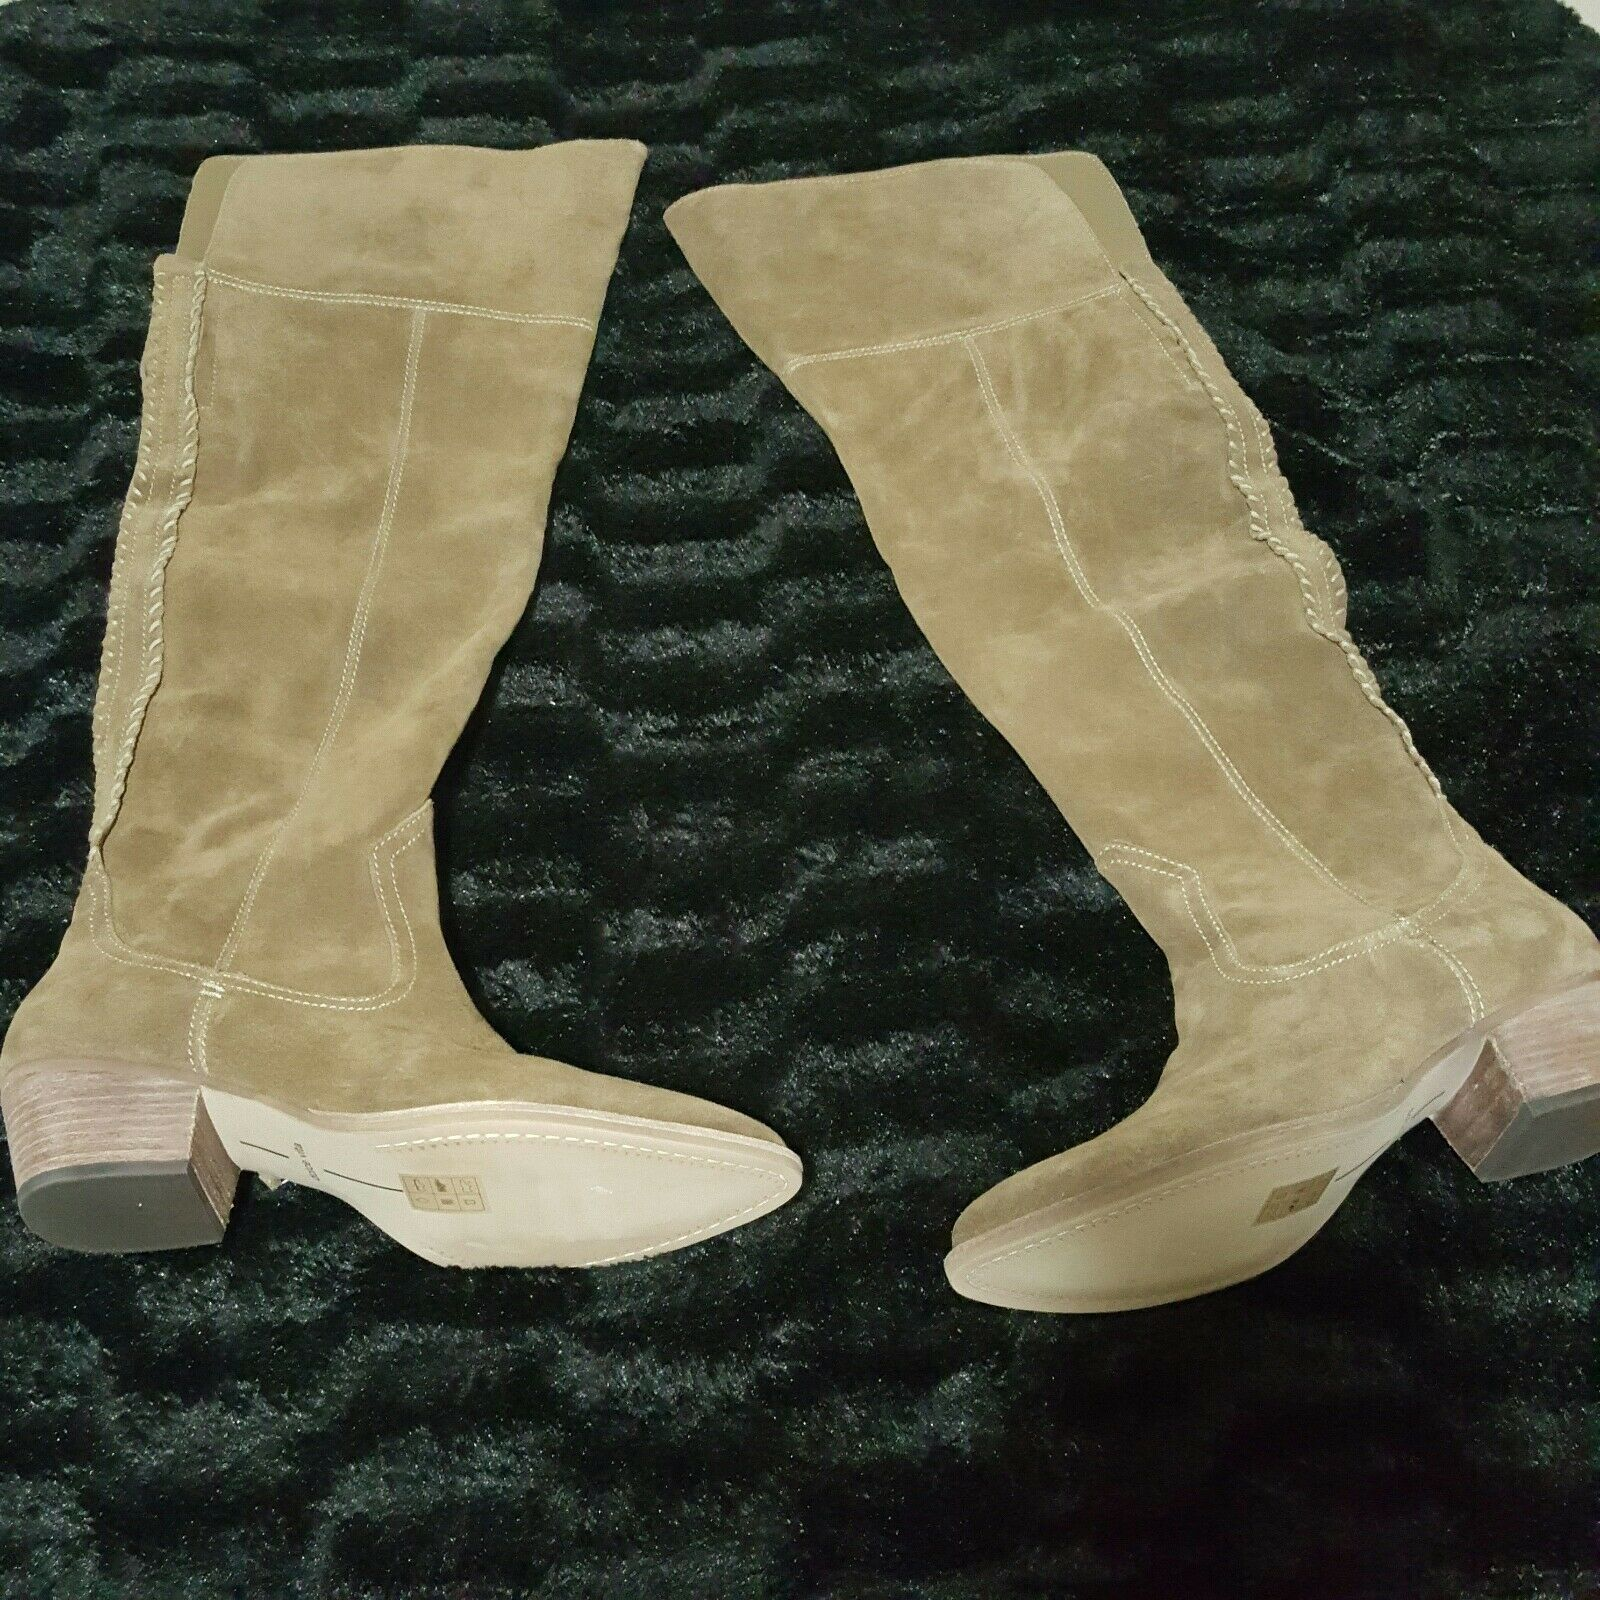 NEW Dolce Vita Sz 9.5 Boots Womens SILAS Over the Knee $300 Khaki Suede Tall 2